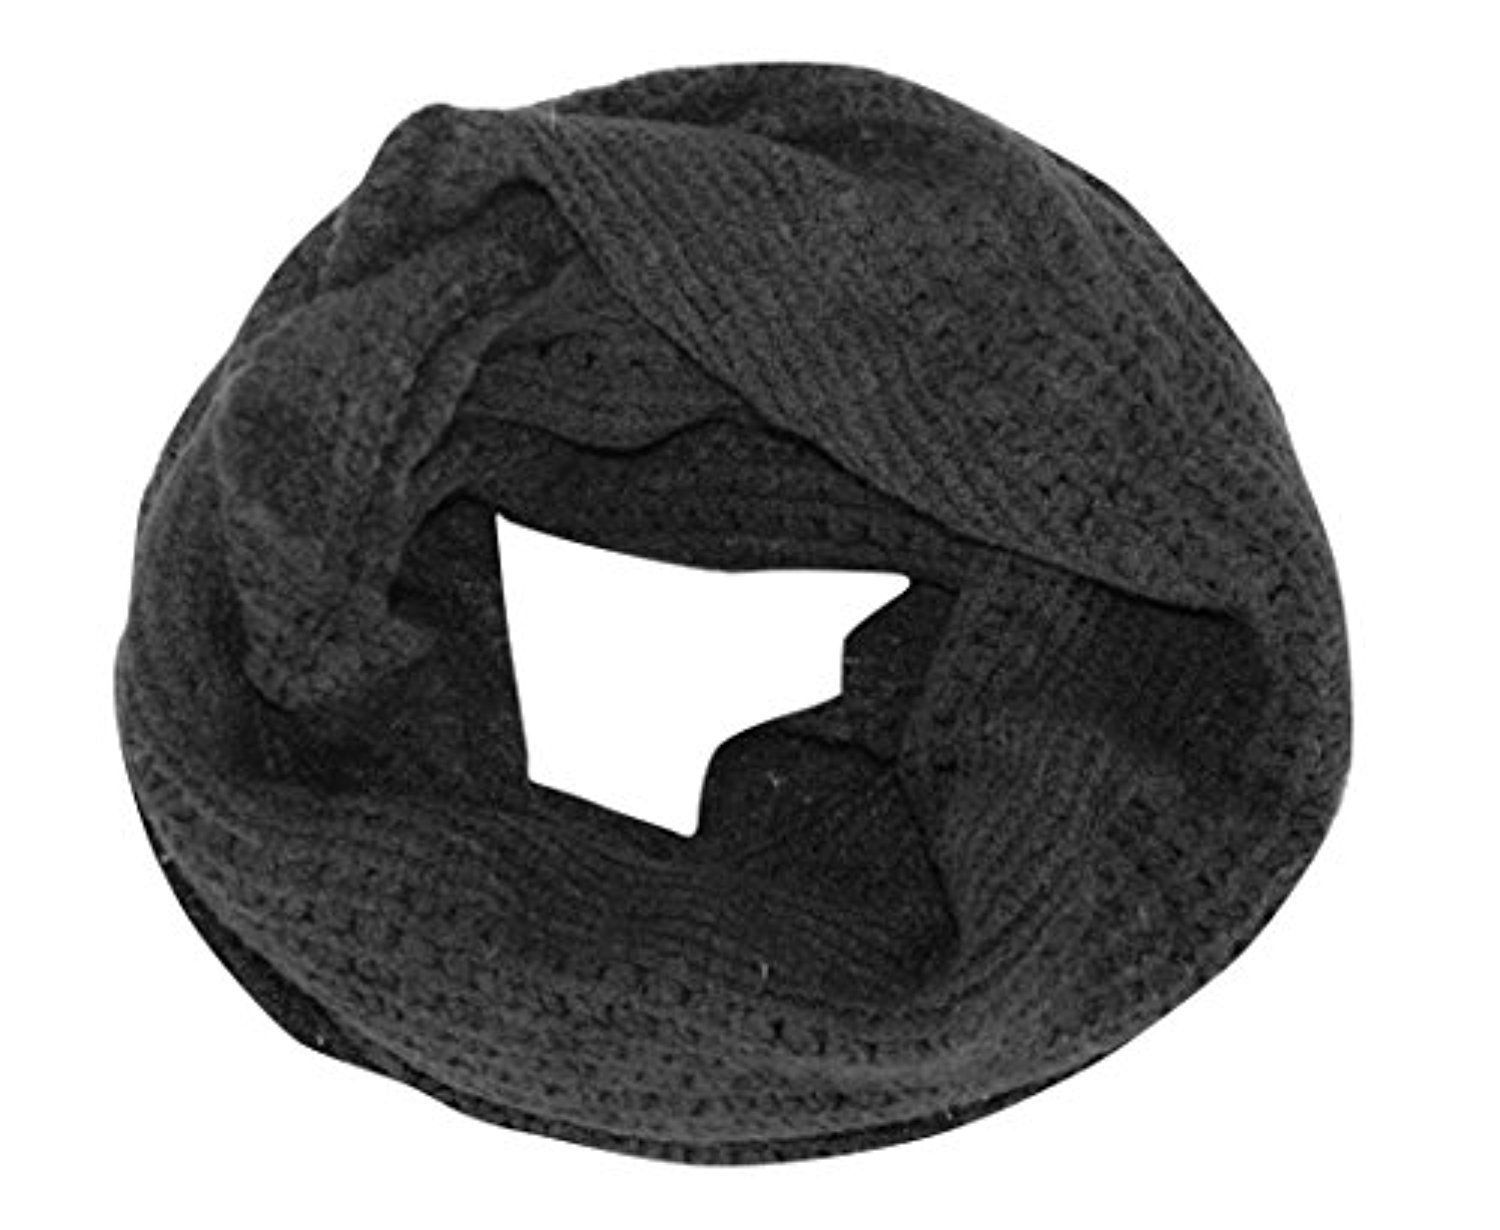 Peach Couture Glamorous Chic Warm Knitted Winter Snood Infinity Loop Scarf (Blac